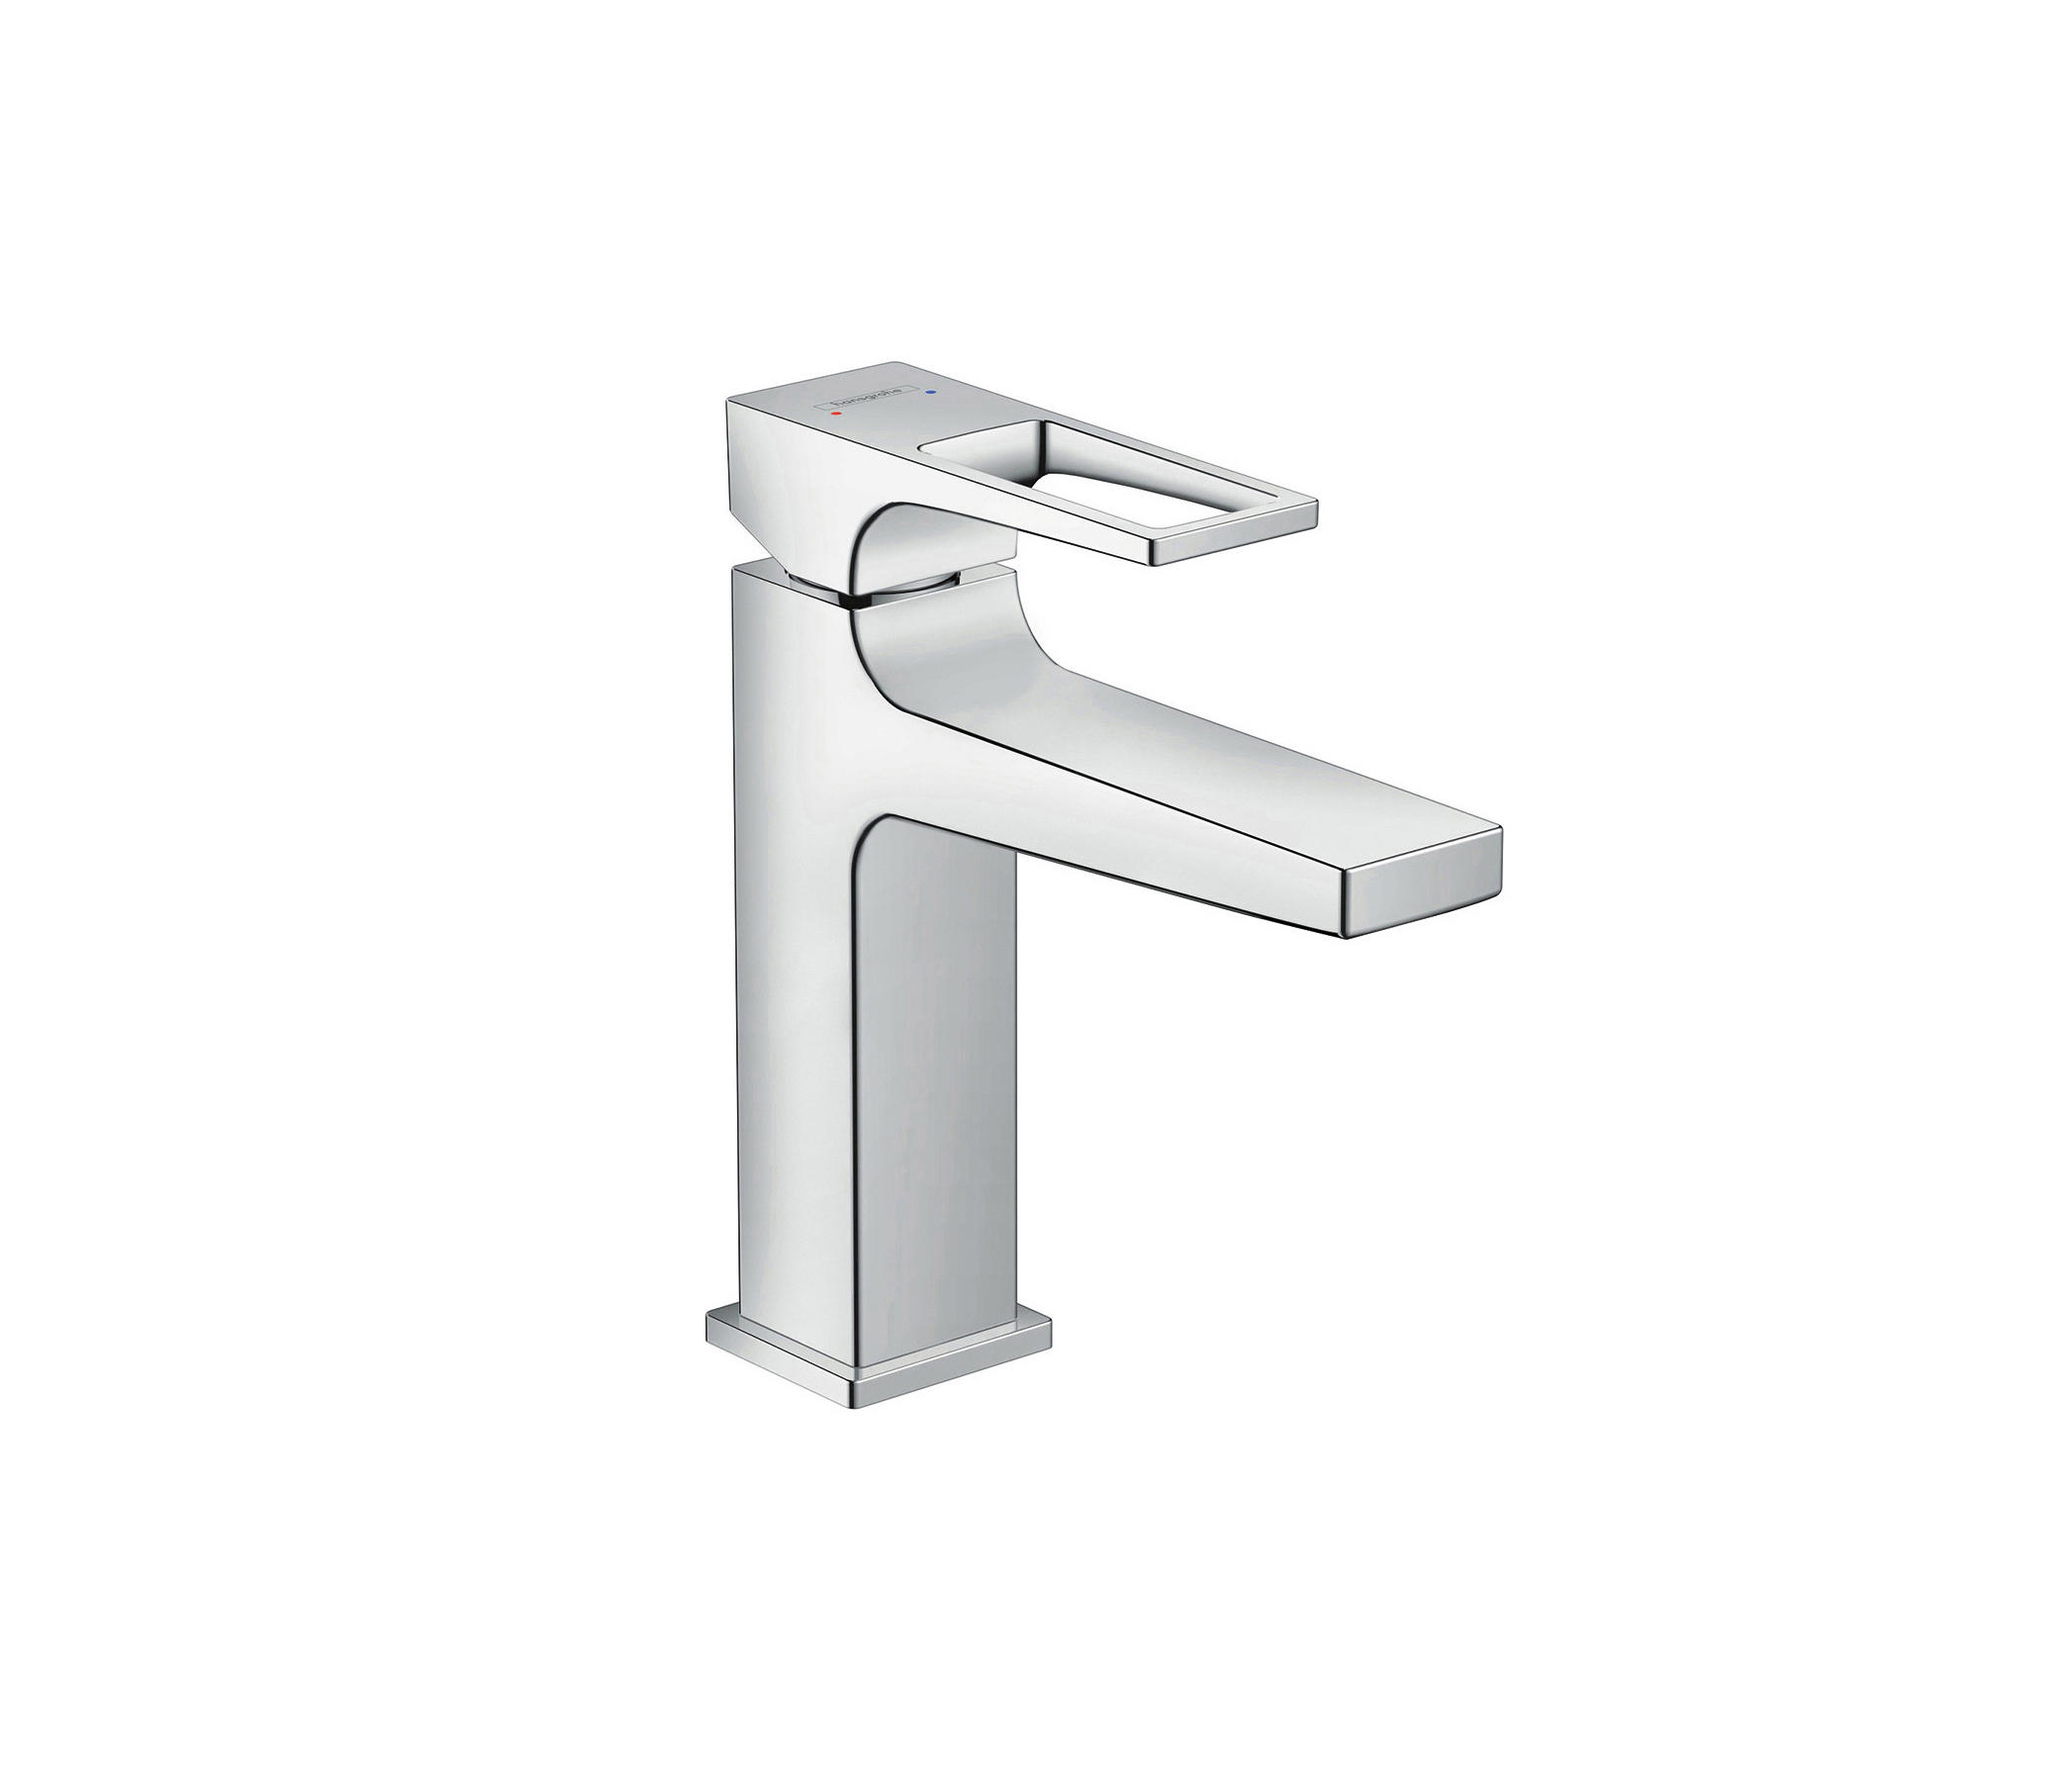 hansgrohe metropol single lever basin mixer 110 with loop handle and push open waste set wash. Black Bedroom Furniture Sets. Home Design Ideas